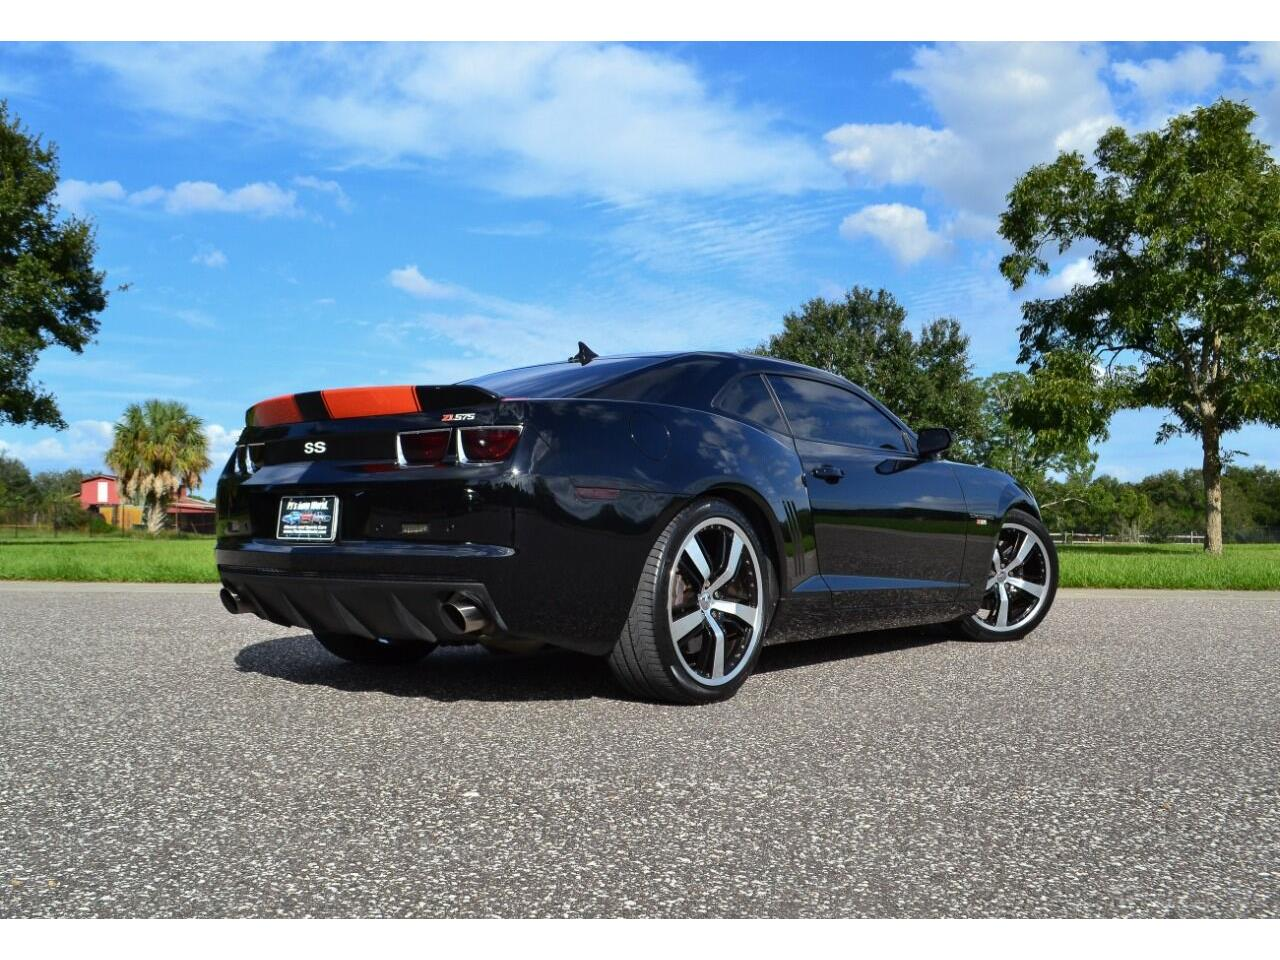 2010 Chevrolet Camaro (CC-1393862) for sale in Clearwater, Florida